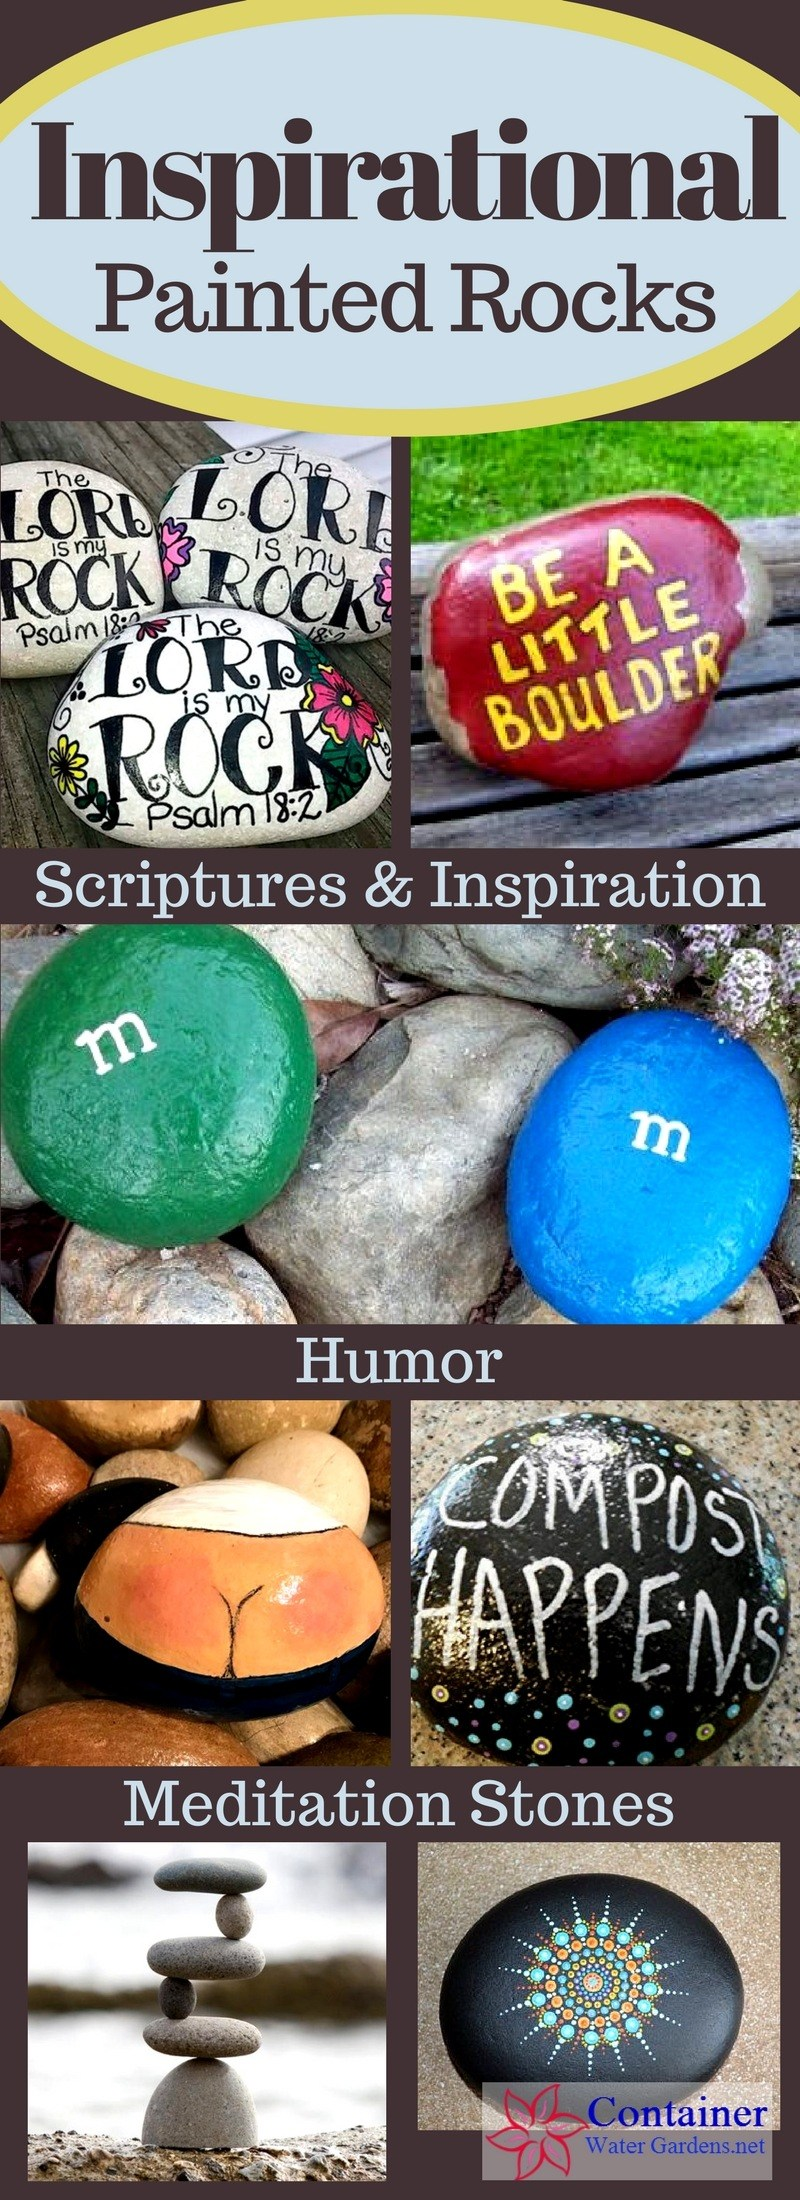 Painted Rock Ideas For The Garden Container Water Gardens